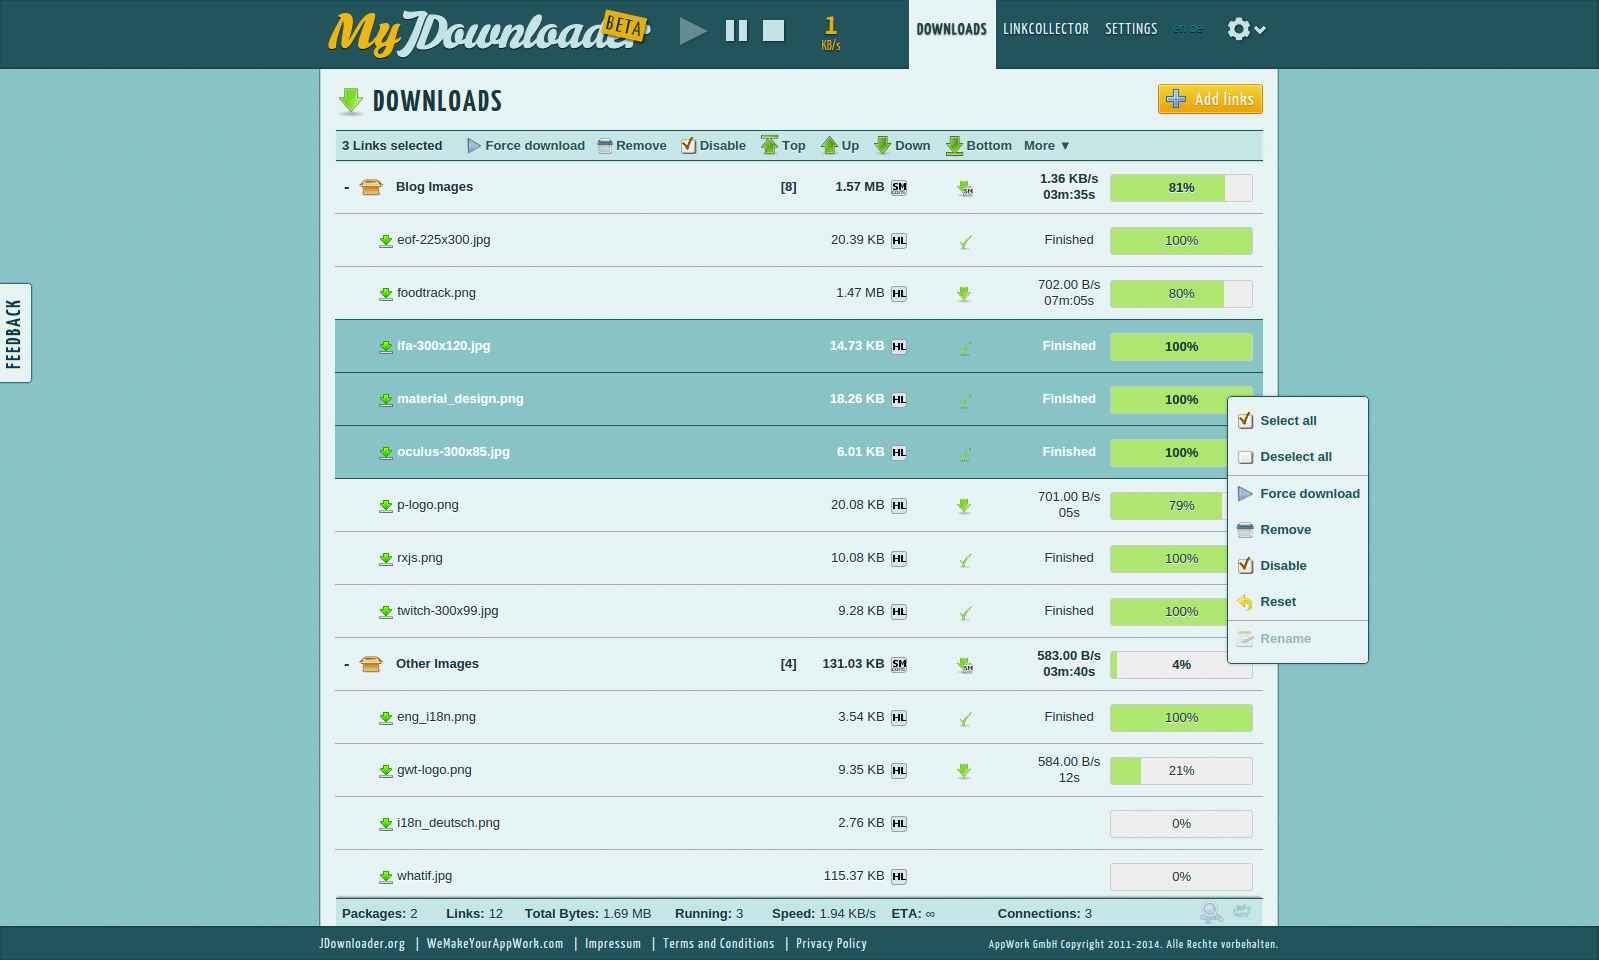 MyJDownloader Downloads View